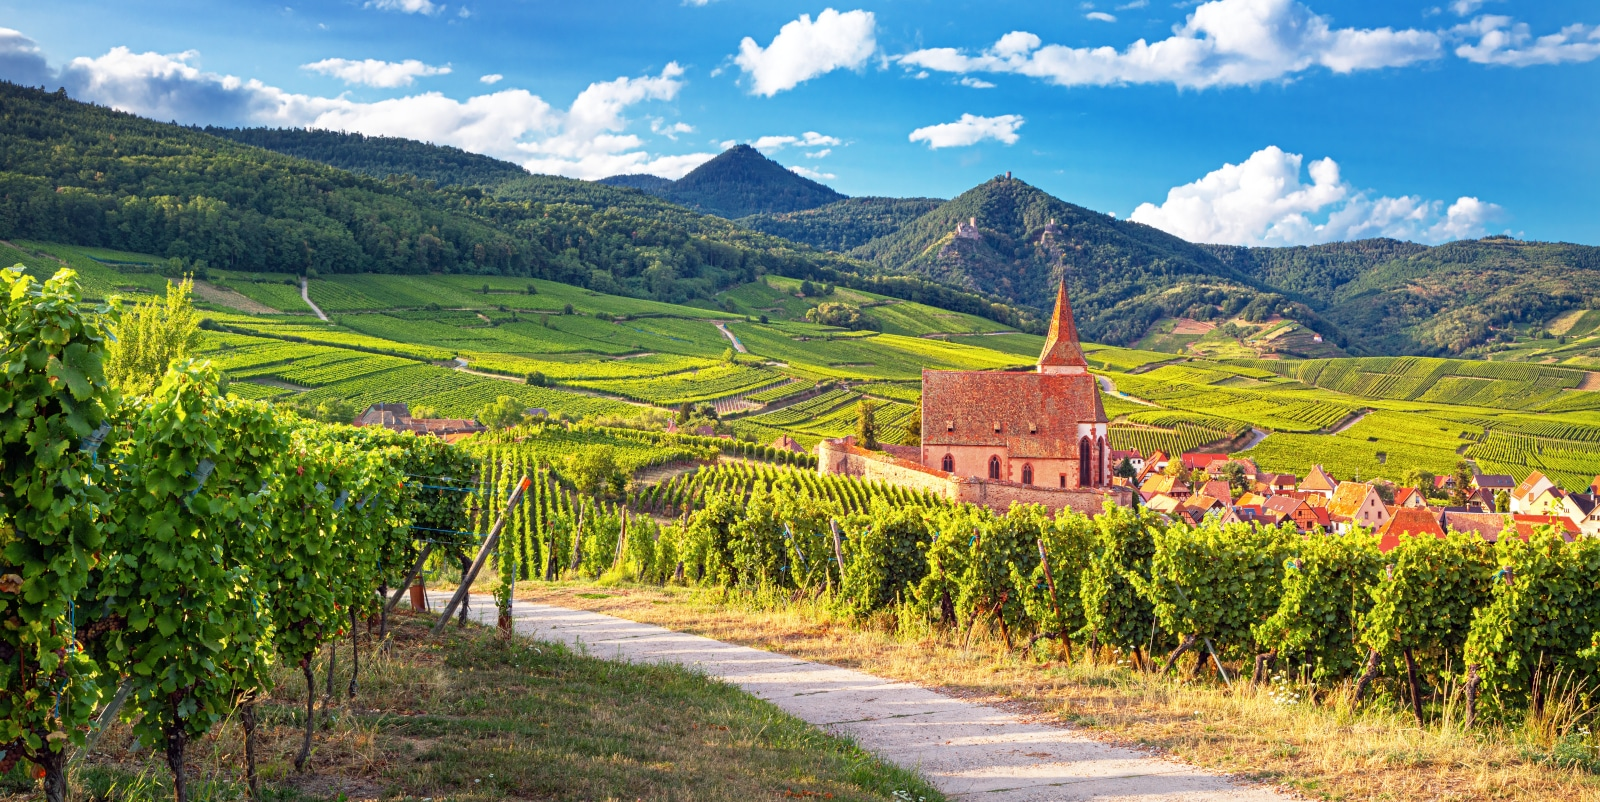 Where Does Gewürztraminer Come From